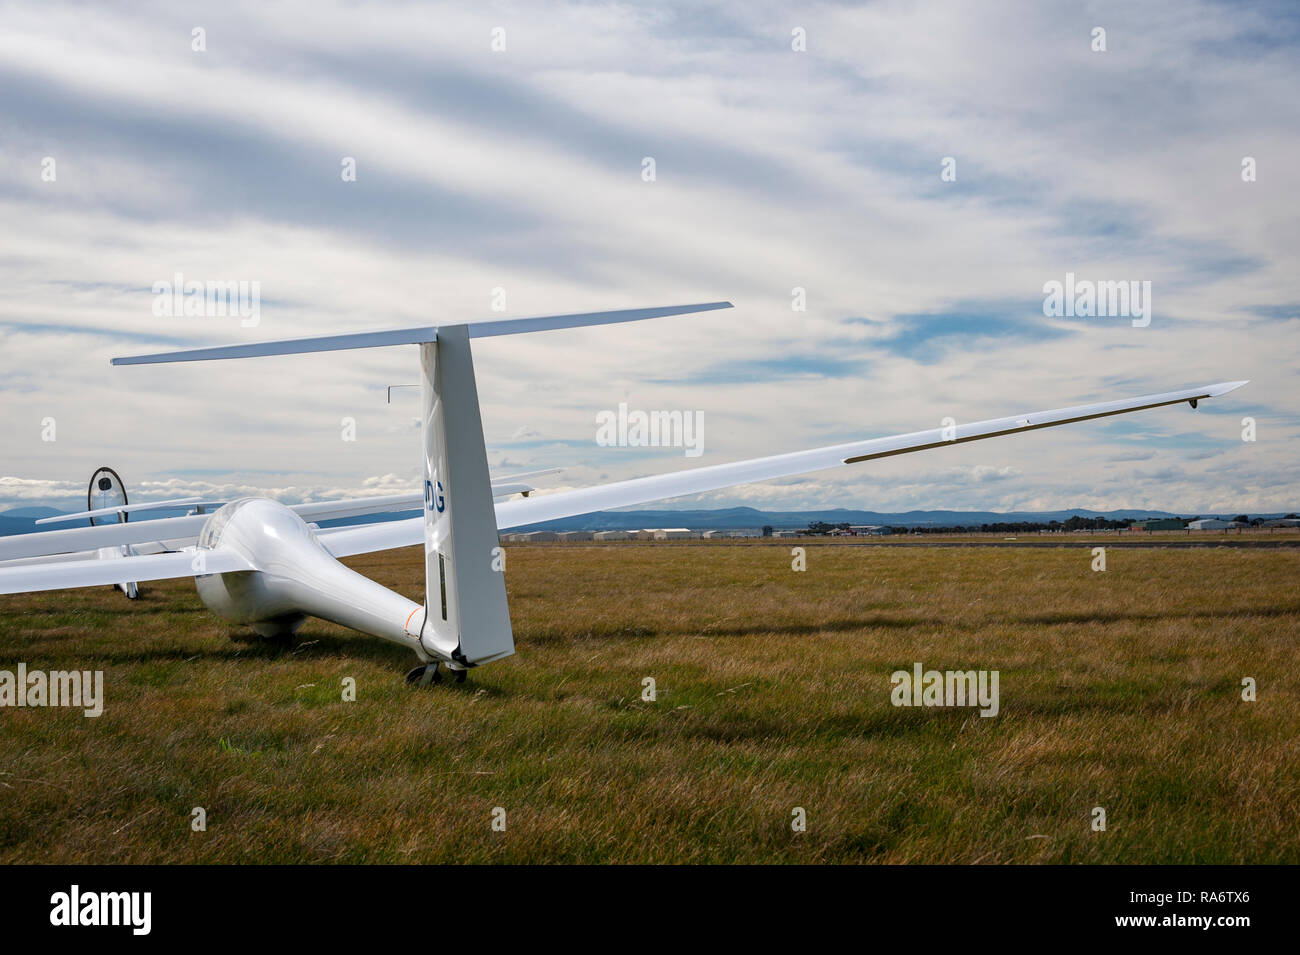 Glider on ground with a cloudy sky and hills on the horizon - Stock Image